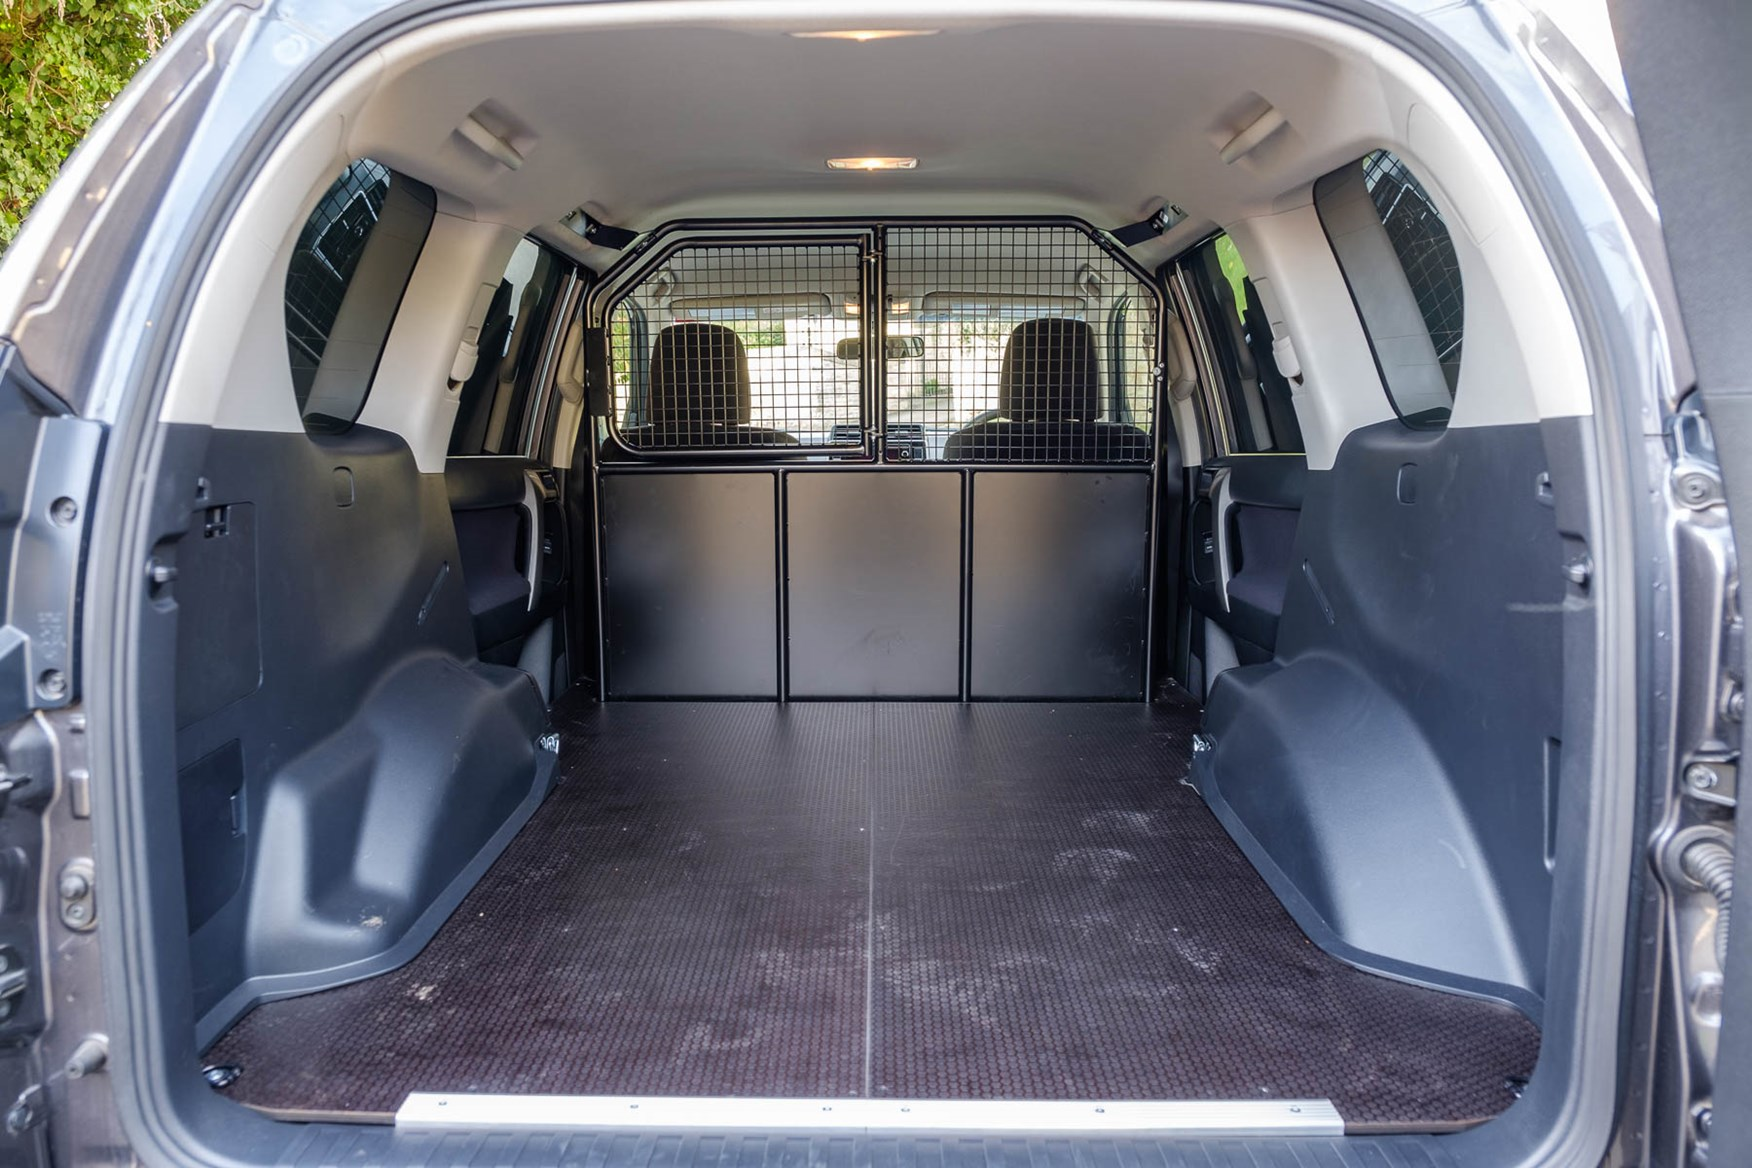 Toyota Land Cruiser Utility Commercial LWB interior